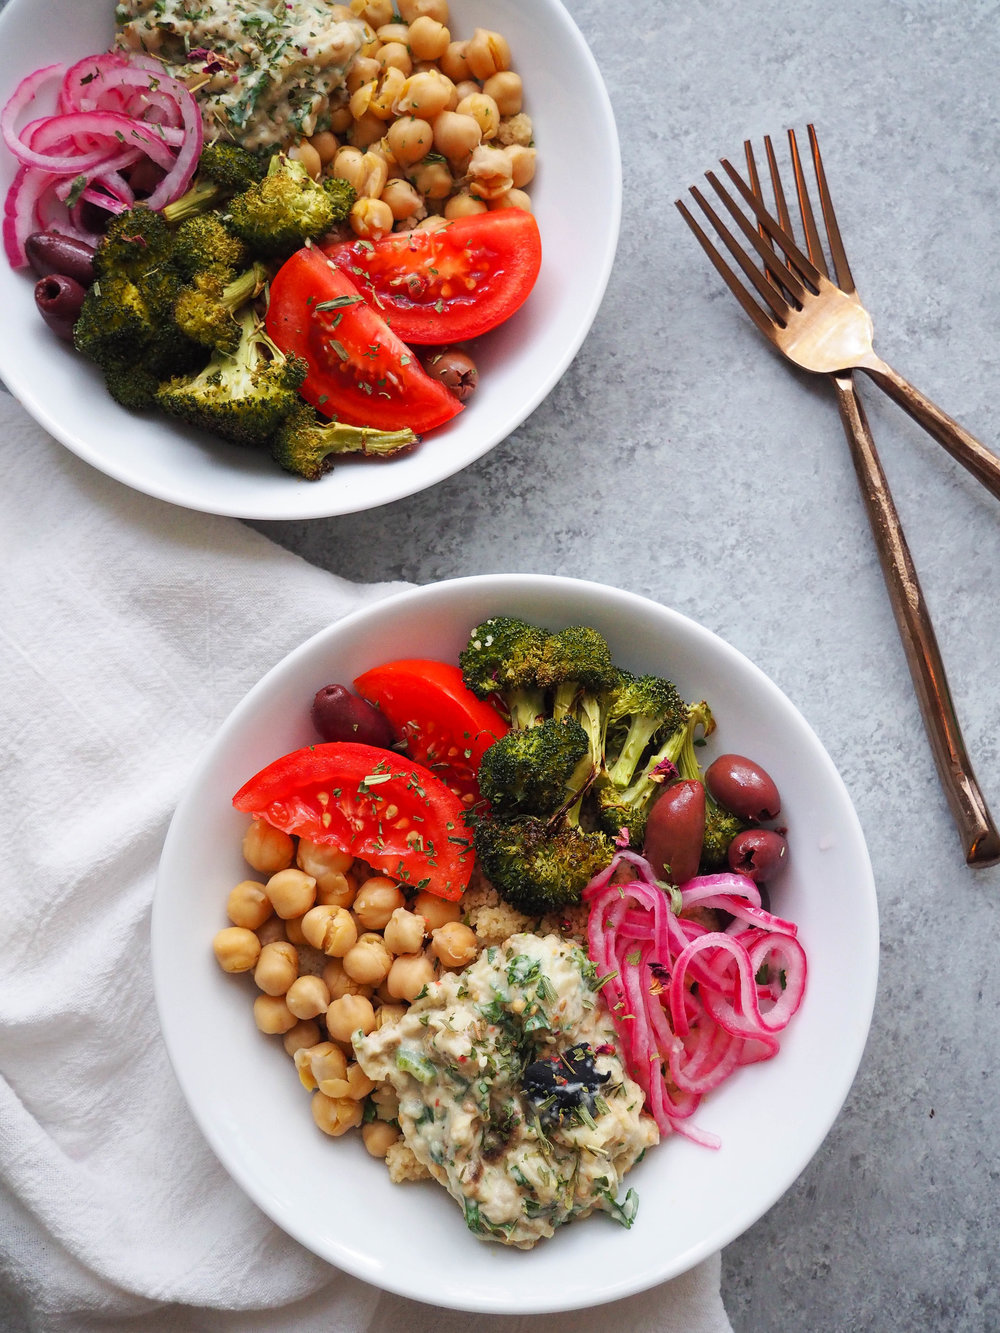 Make this vegetarian babaganoush bowl loaded with roasted broccoli, chickpeas, , pickled red onions and a big scoop of creamy babaganoush! #Mediterranean #grainbowl #healthyrecipe #vegetarian